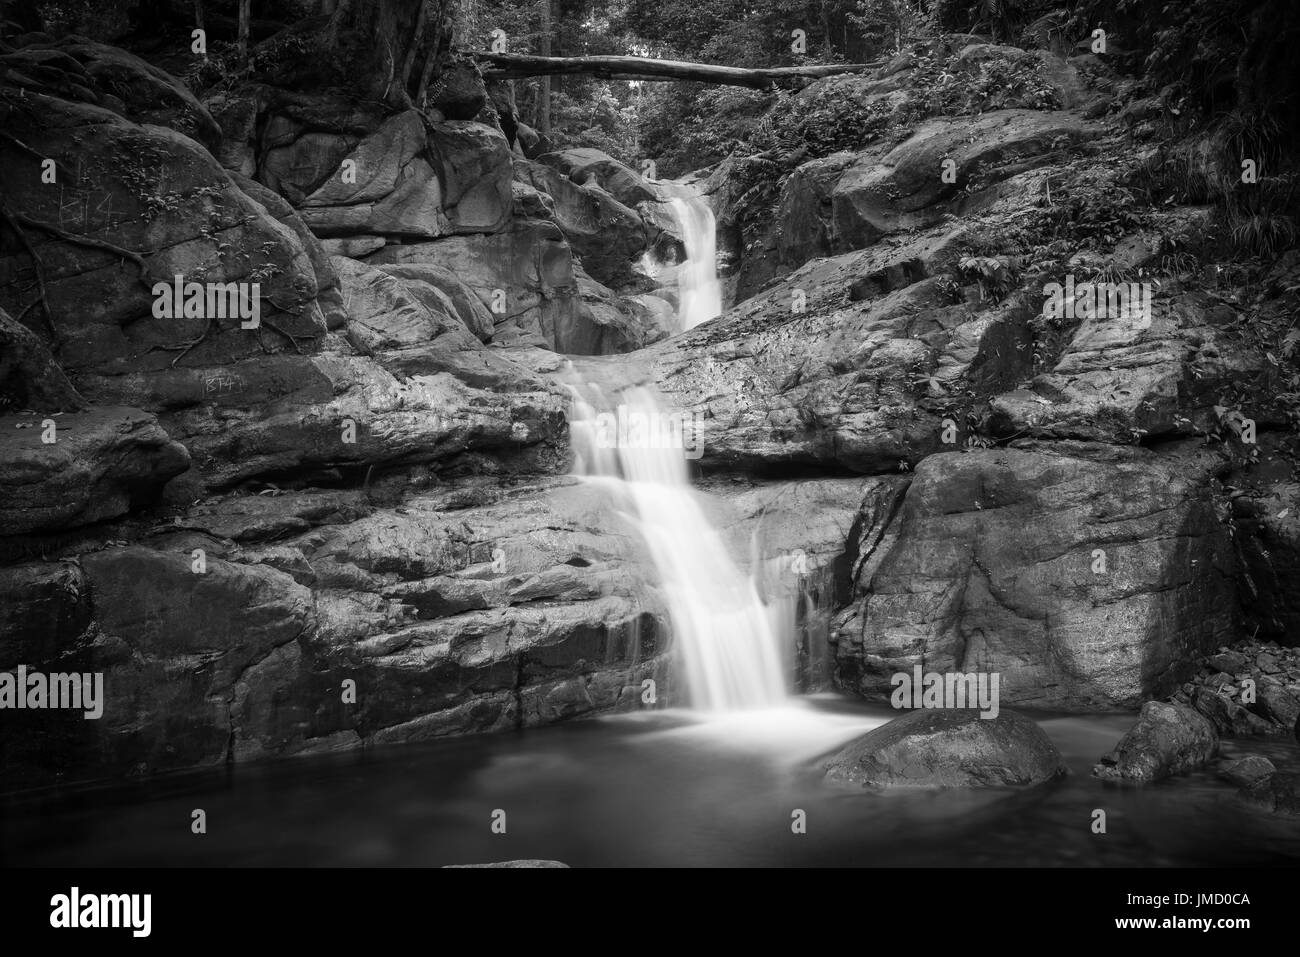 Black and white photograph of rainforest waterfall and riverside scenery taken in the national parks of Sarawak, Malaysia - Stock Image